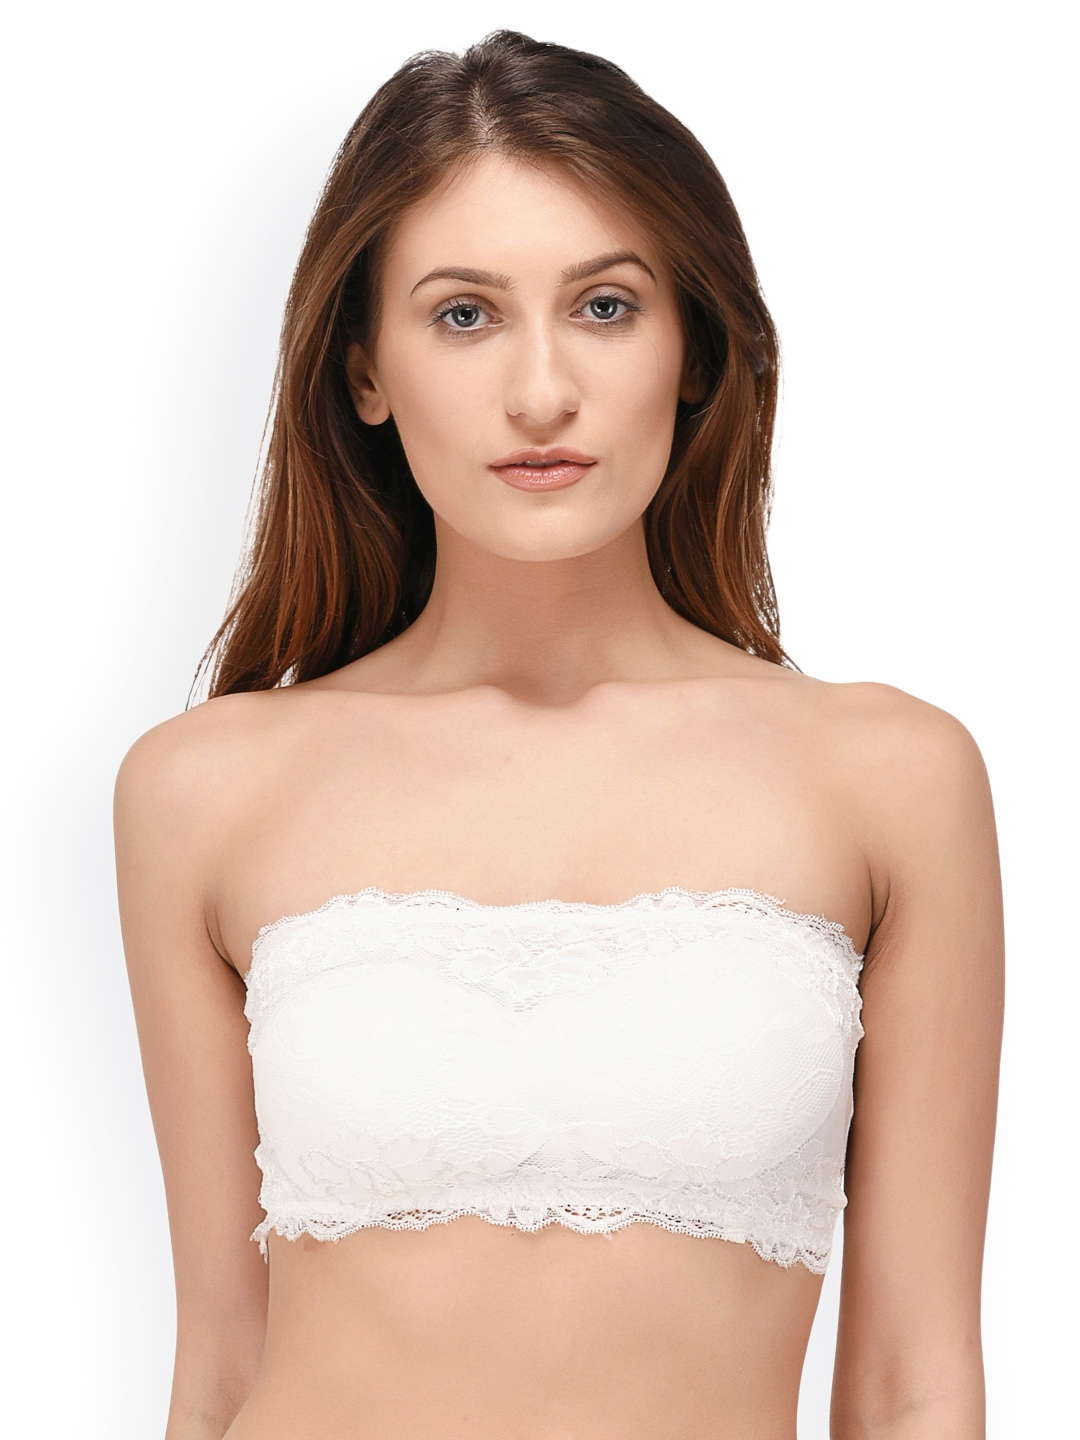 53ab6c70ba47f Buy PrettyCat White Lace Non Wired Lightly Padded Bandeau Bra - Bra ...